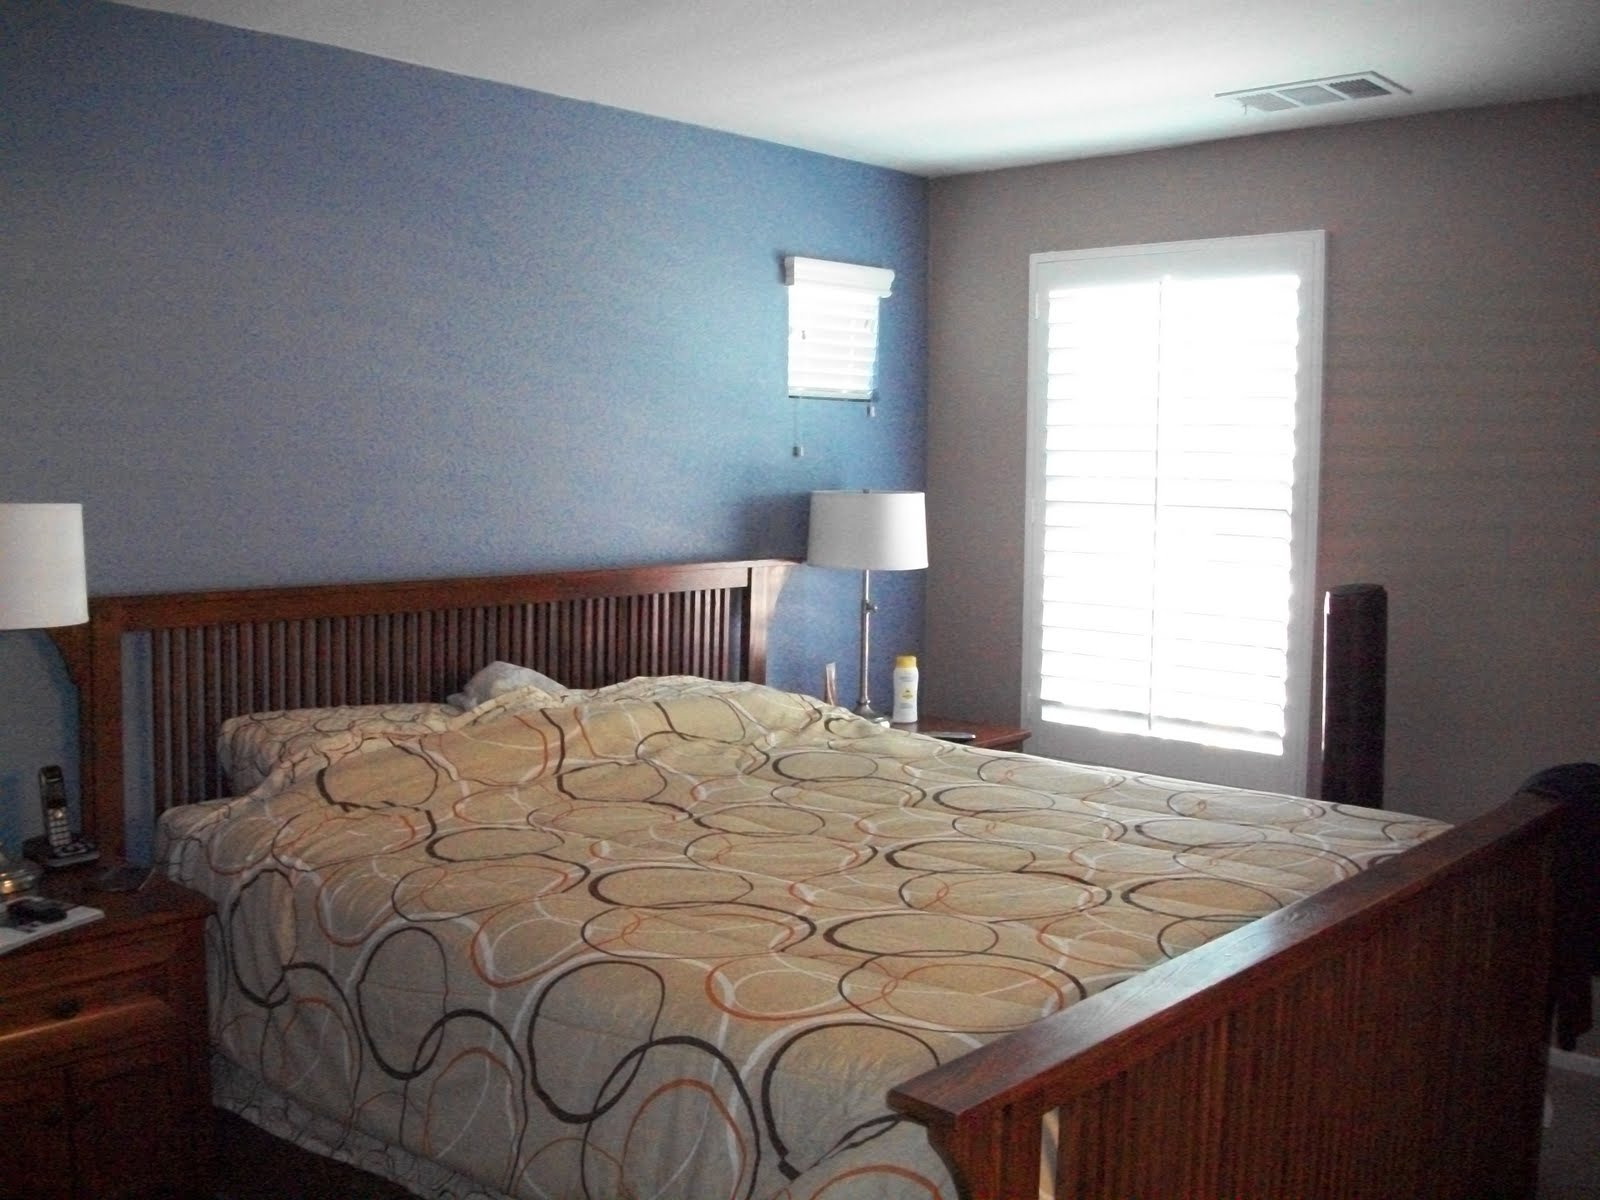 Jeffrey and kristi tague our life together Master bedroom light blue walls